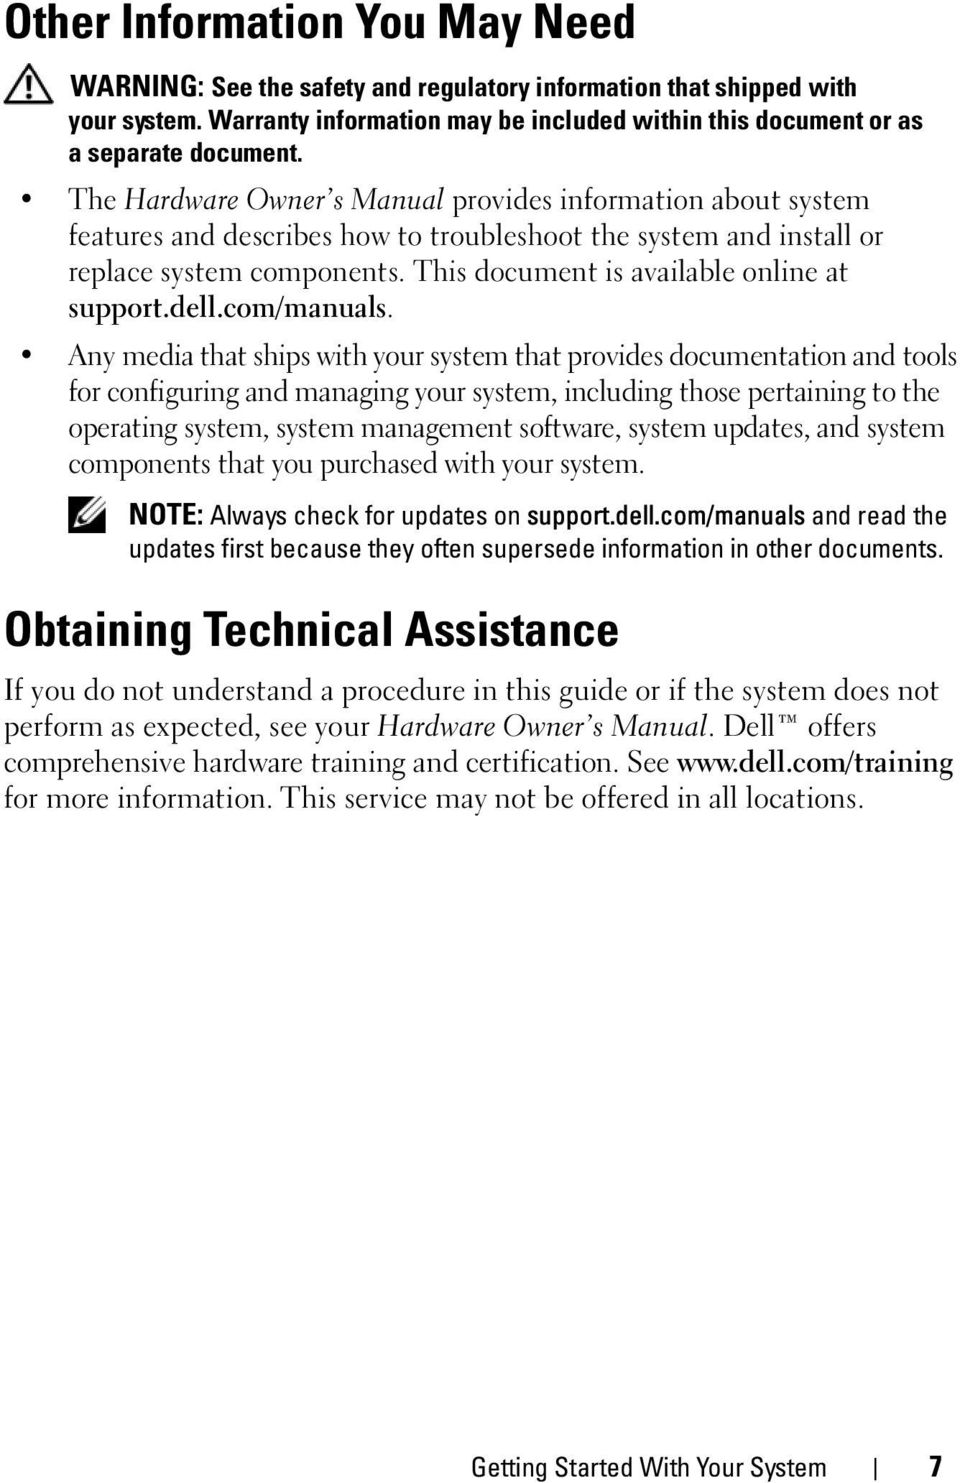 This document is available online at support.dell.com/manuals.